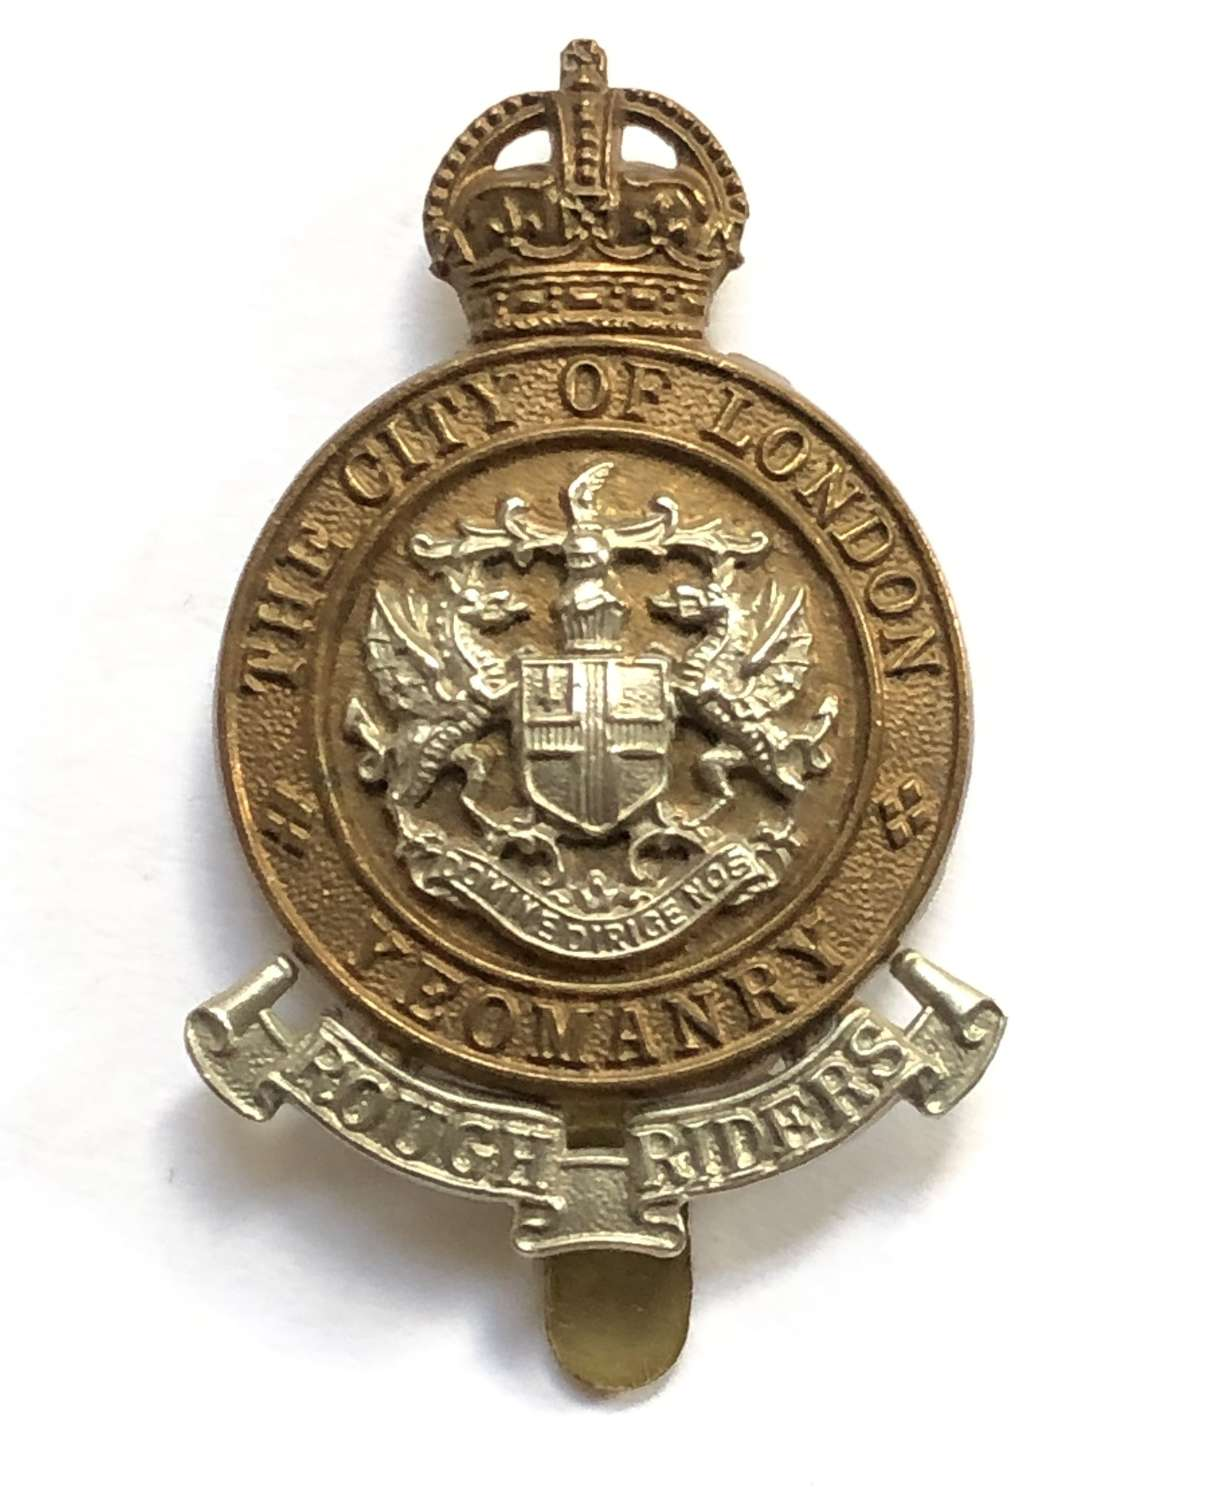 Rough Riders City of London Yeomanry OR's cap badge by Gaunt, London